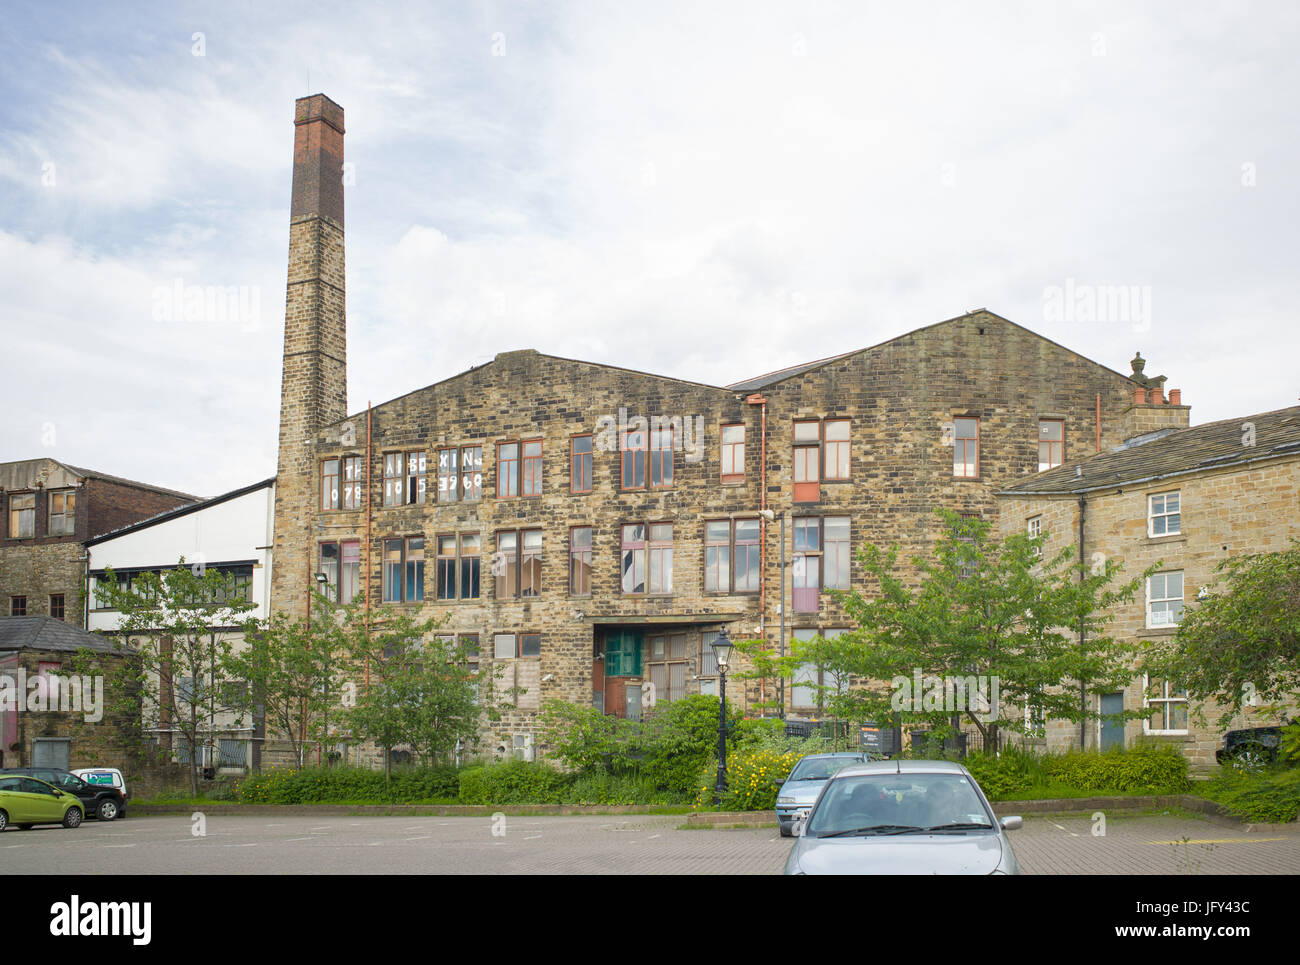 Chimney of former mill with building repurposed and occupied as training school, Burnley, Lancashire, UK - Stock Image